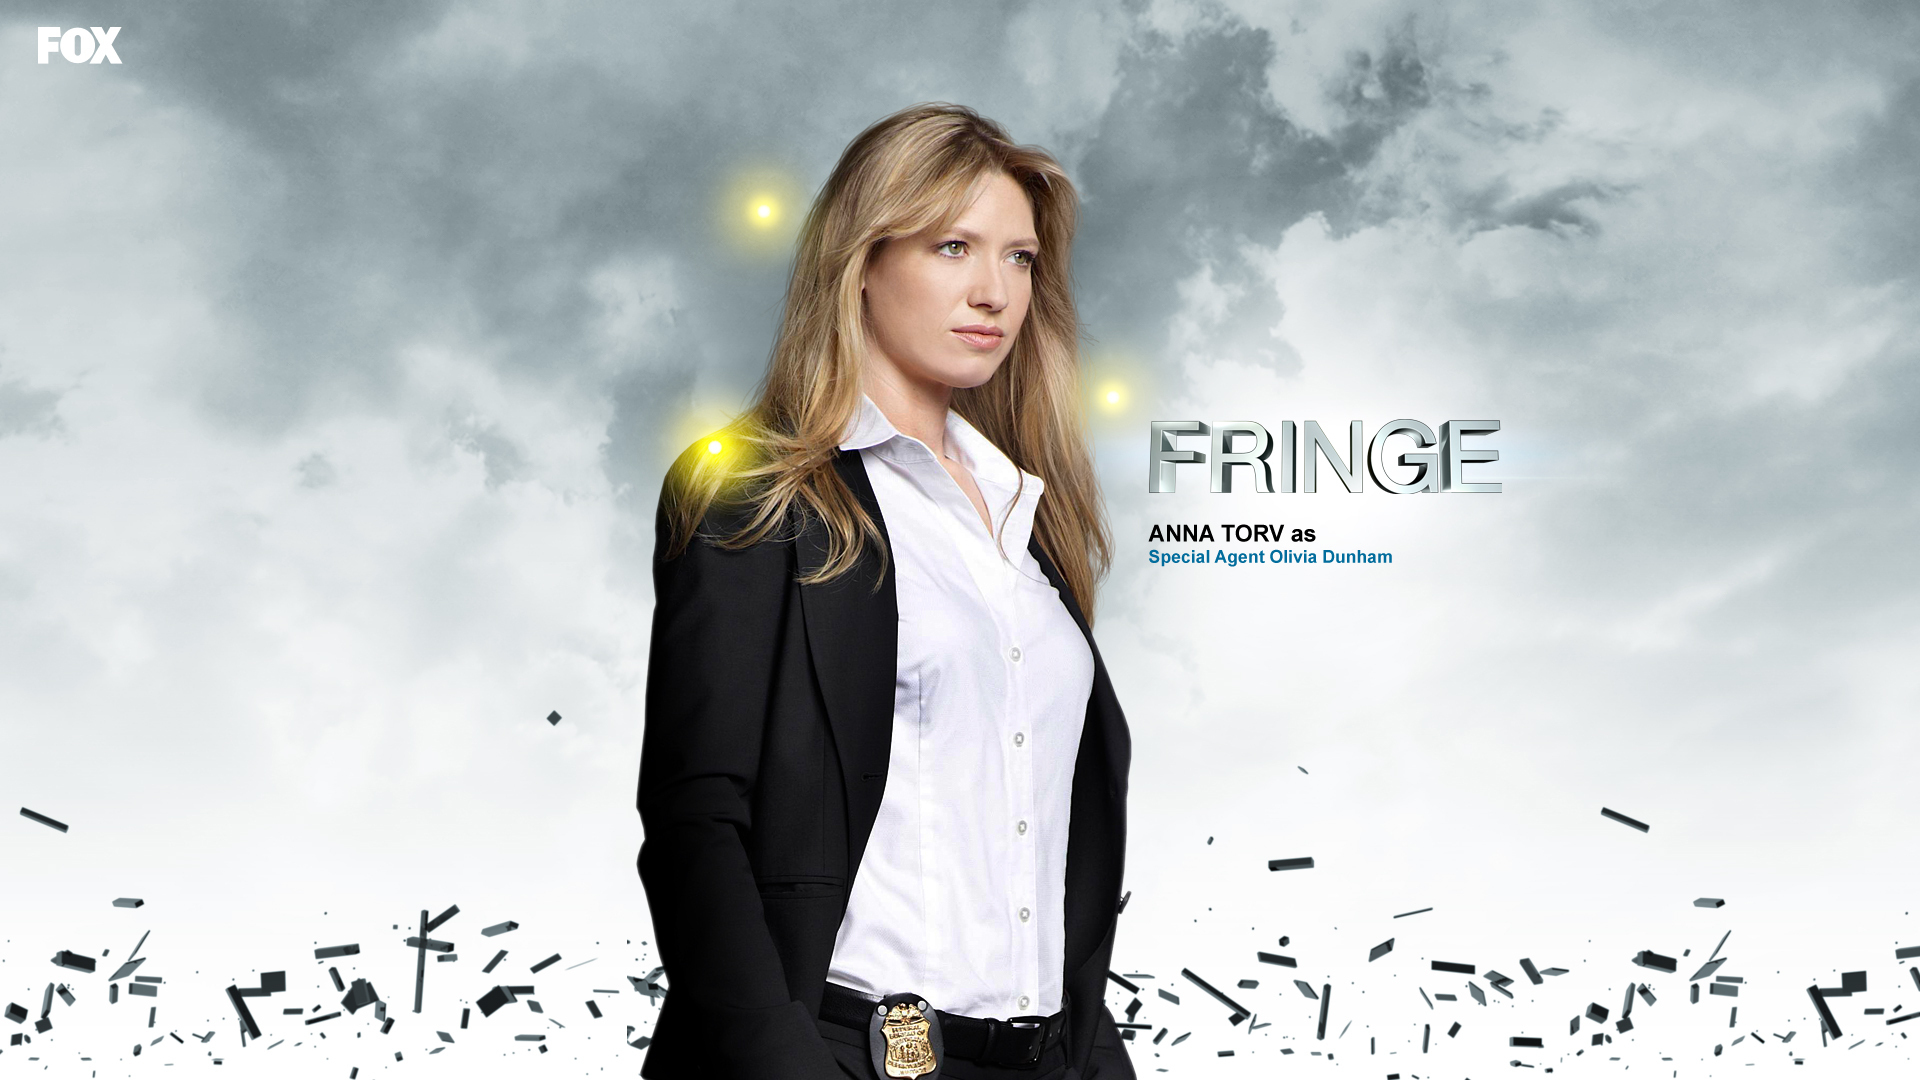 Fringe images Olivia Dunham HD wallpaper and background